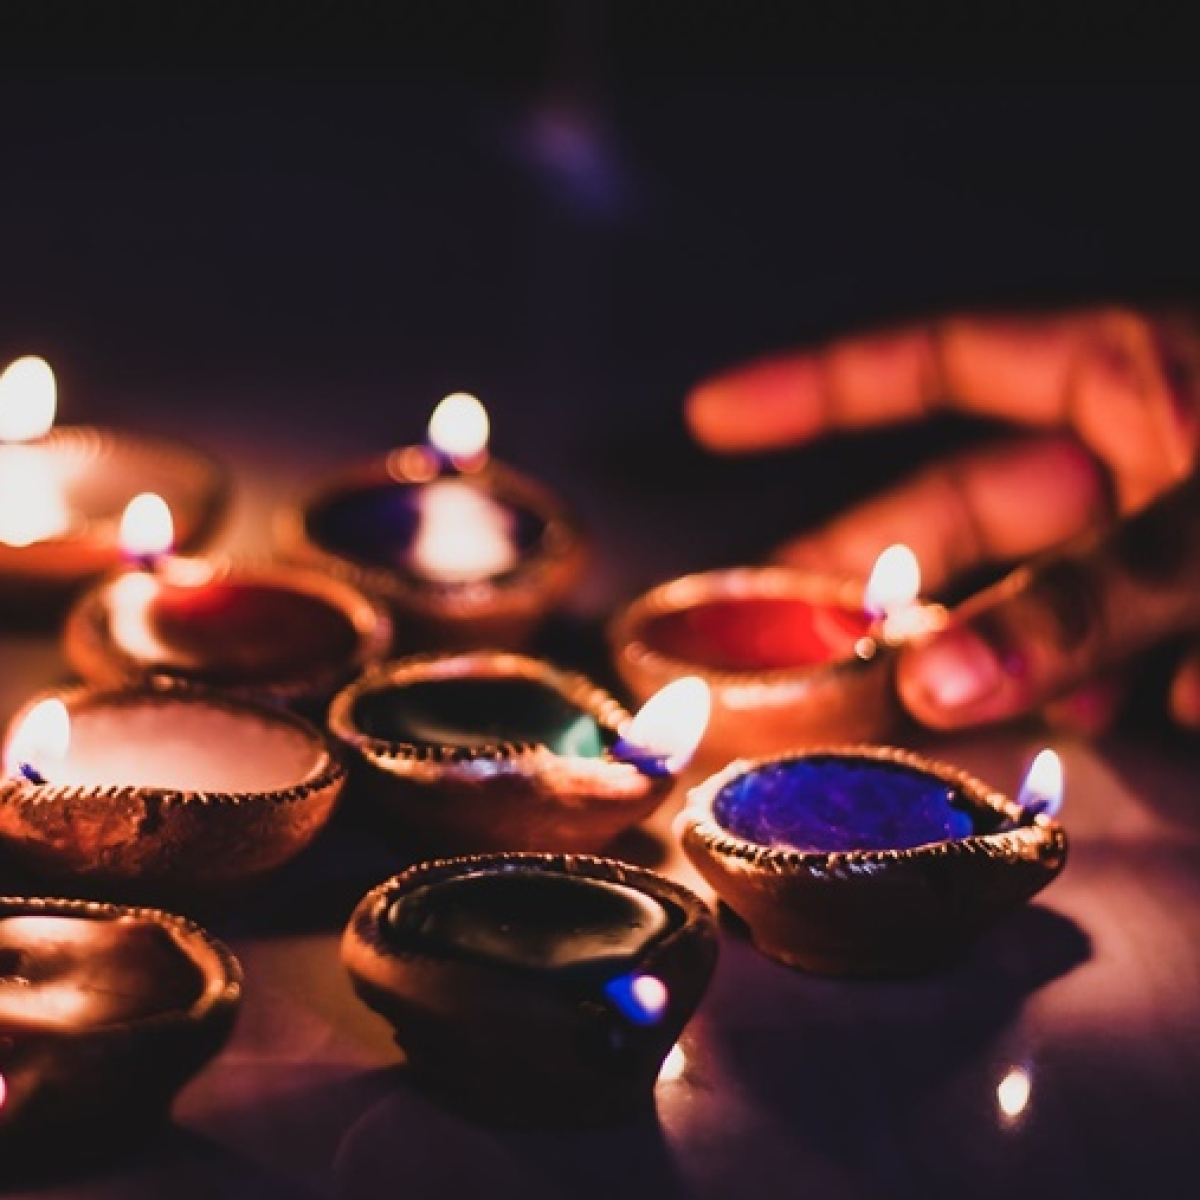 9 Baje 9 Minute: People gear up with diyas, candles as per PM Modi's appeal